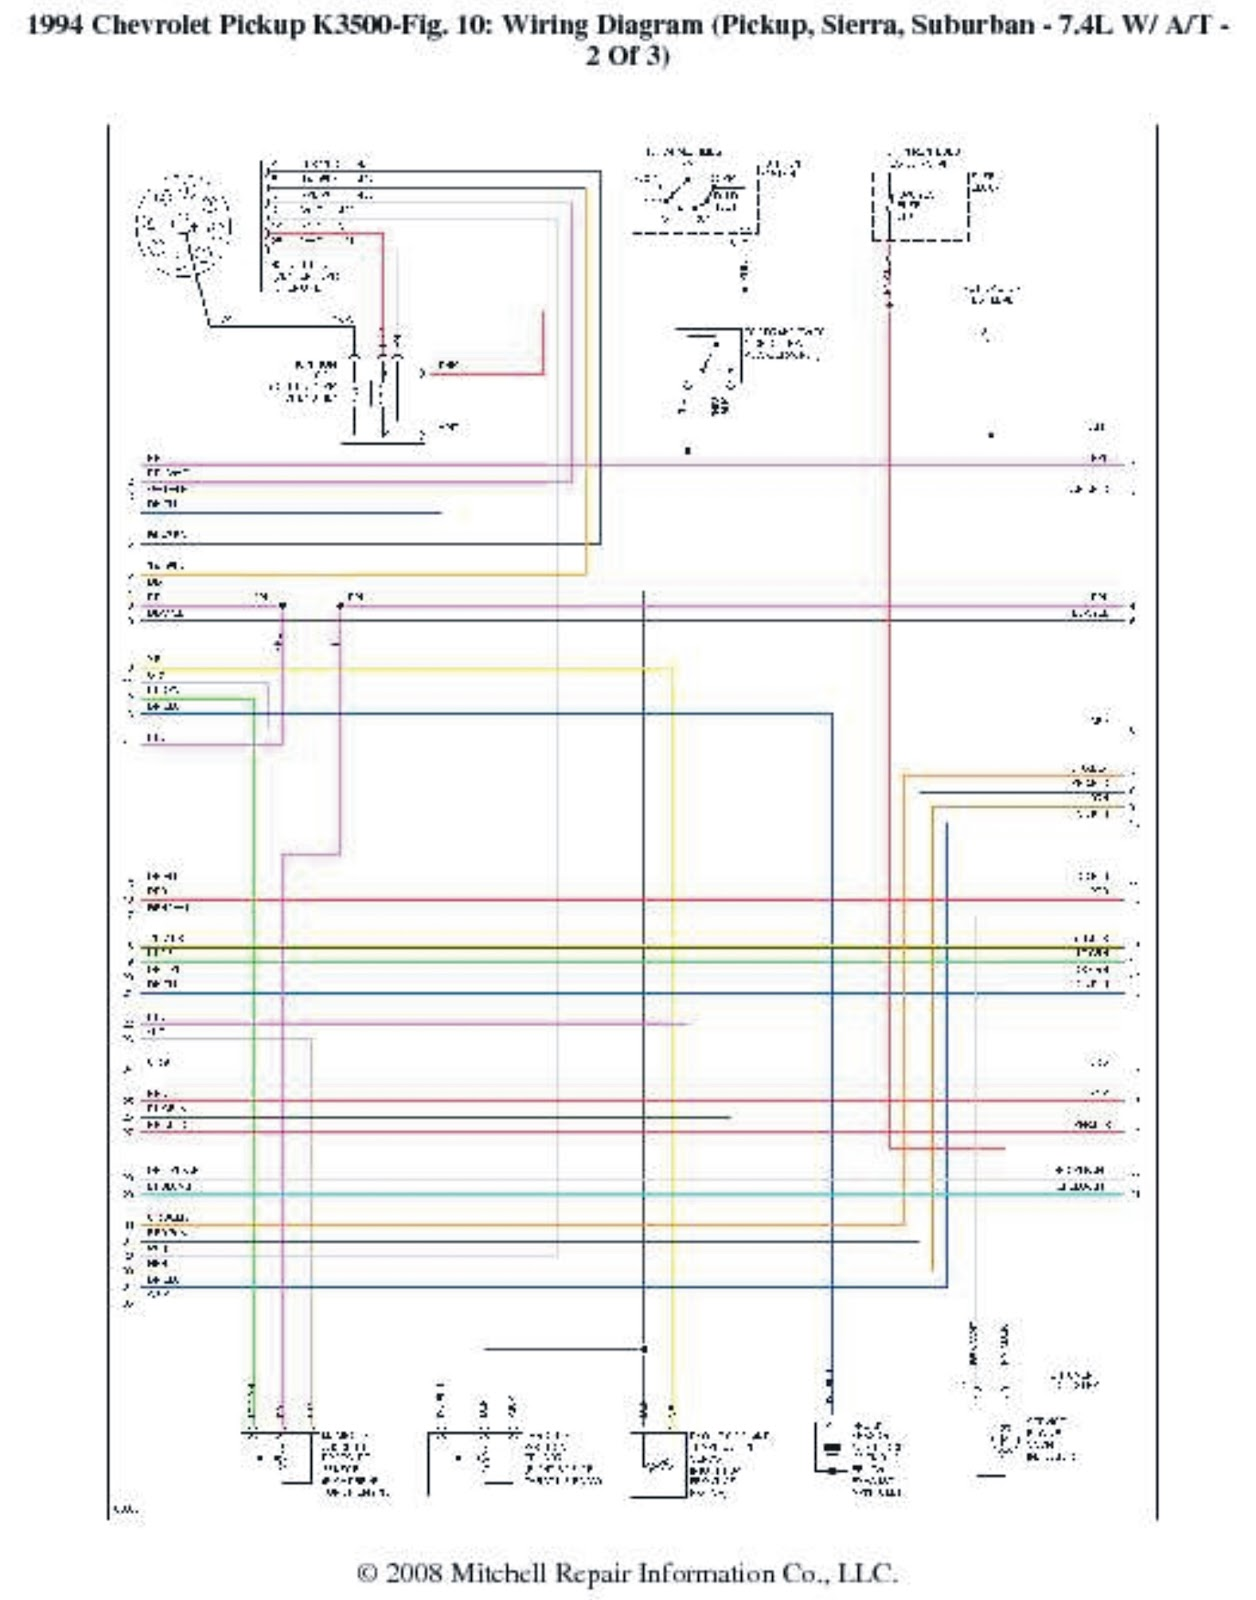 1994 chevy s10 wiring diagram another blog about wiring diagram u2022 rh  ok2 infoservice ru 1995 Chevy Silverado 6.5 Diesel Transmission Wire Diagram  1994 ...